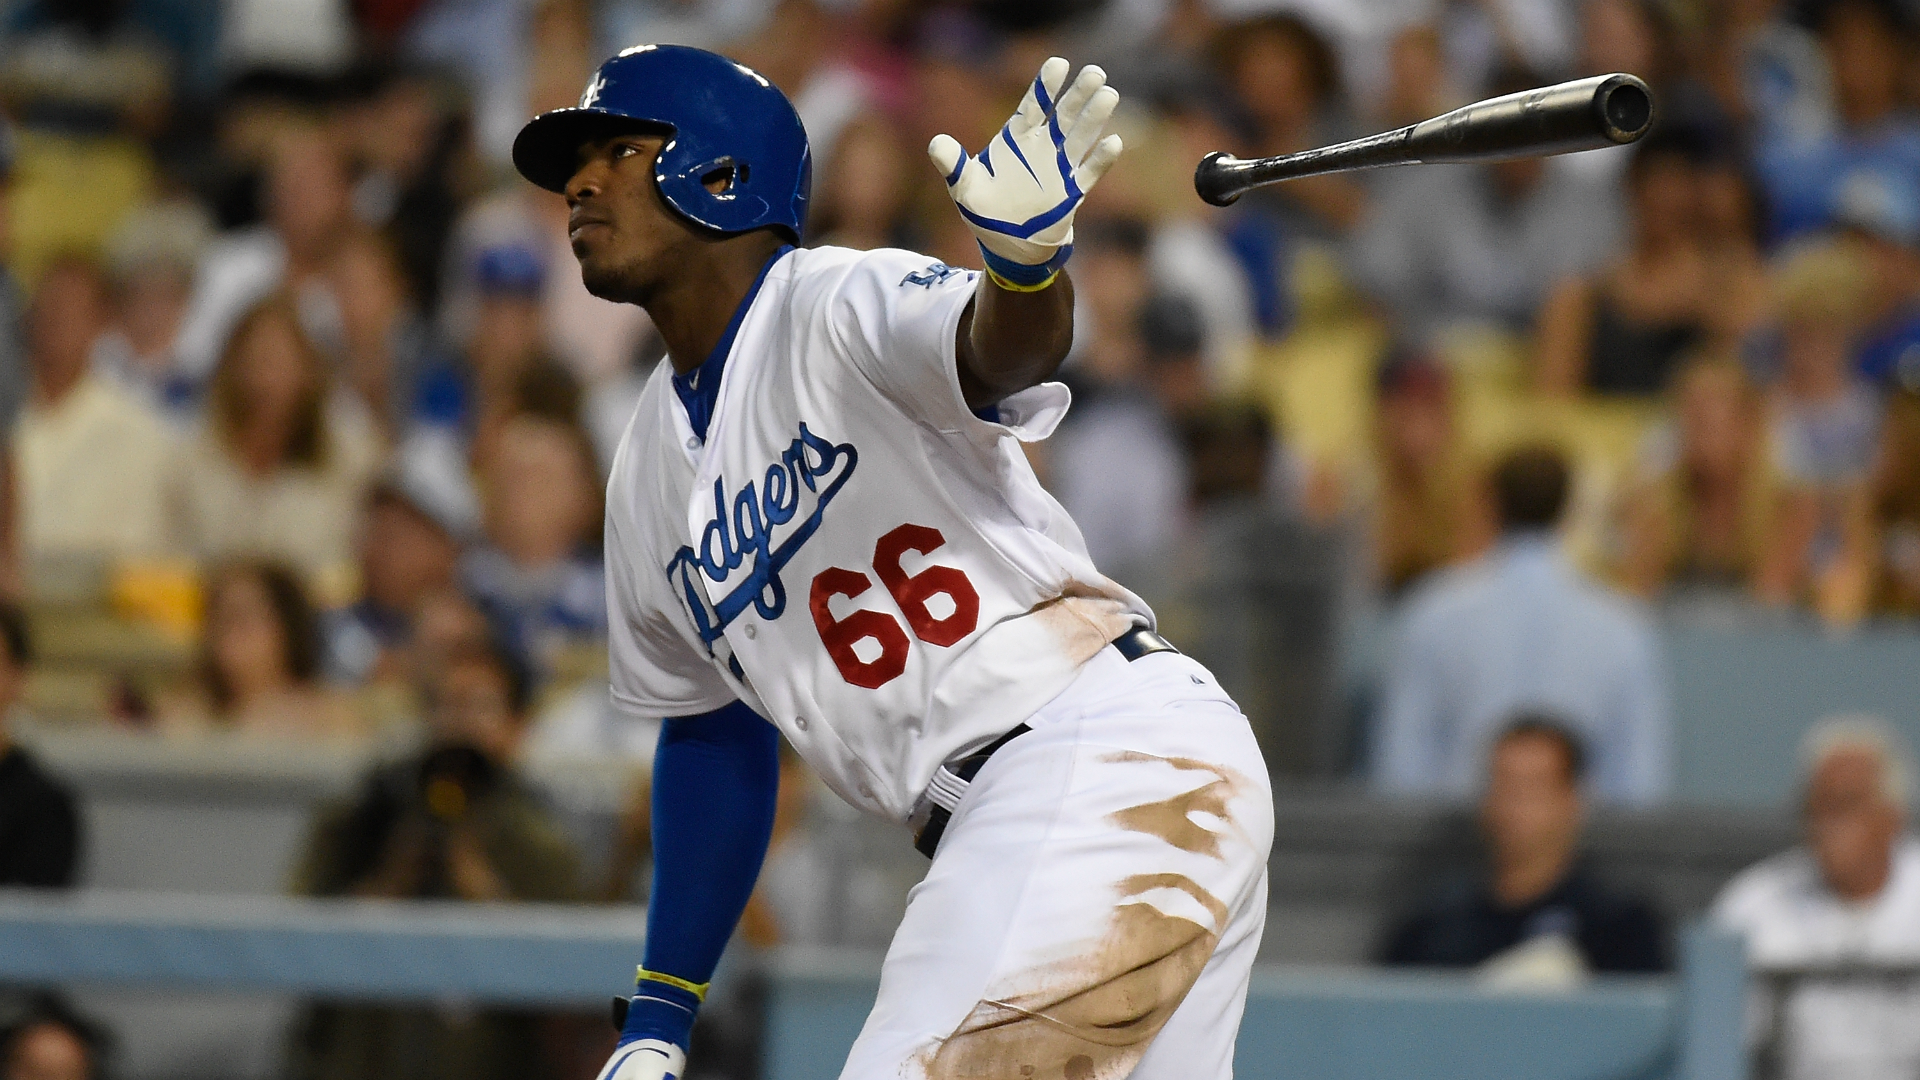 Dodgers clubhouse manager gave Yasiel Puig No. 66 in reference to 666, 'like he was Diablo'